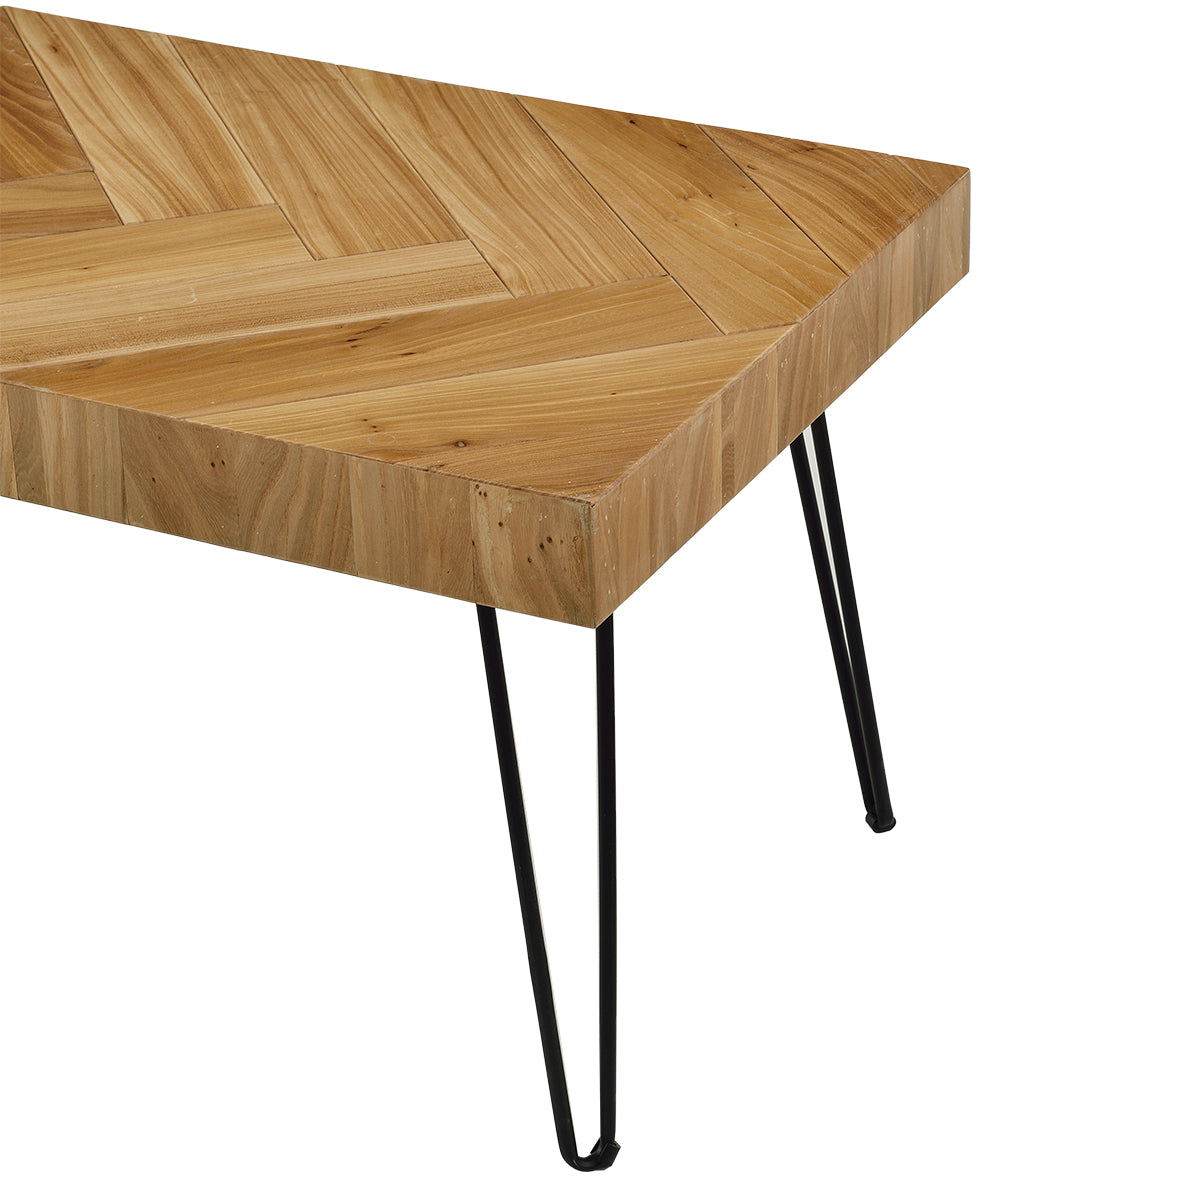 Dark Khaki Coffee Table w/Chevron Pattern & Metal Hairpin Legs Glossy Finished Wood BH190111